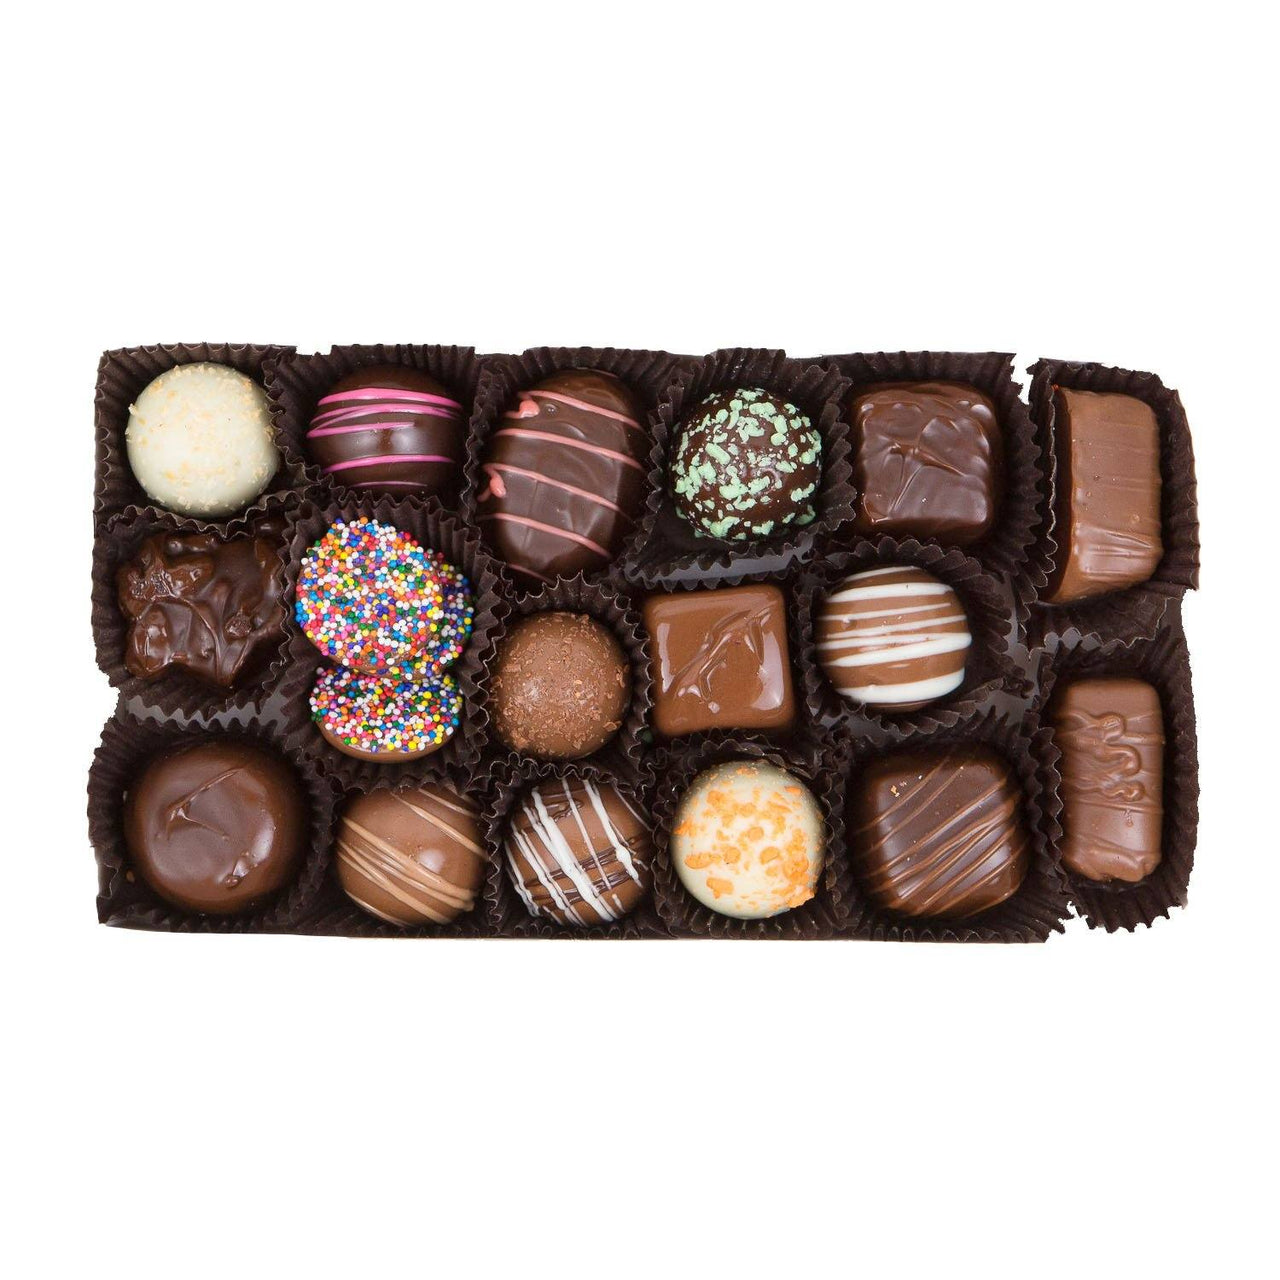 Gifts for Your Boss - Assorted Chocolate Gift Box - Jackie's Chocolate (1487144288291)